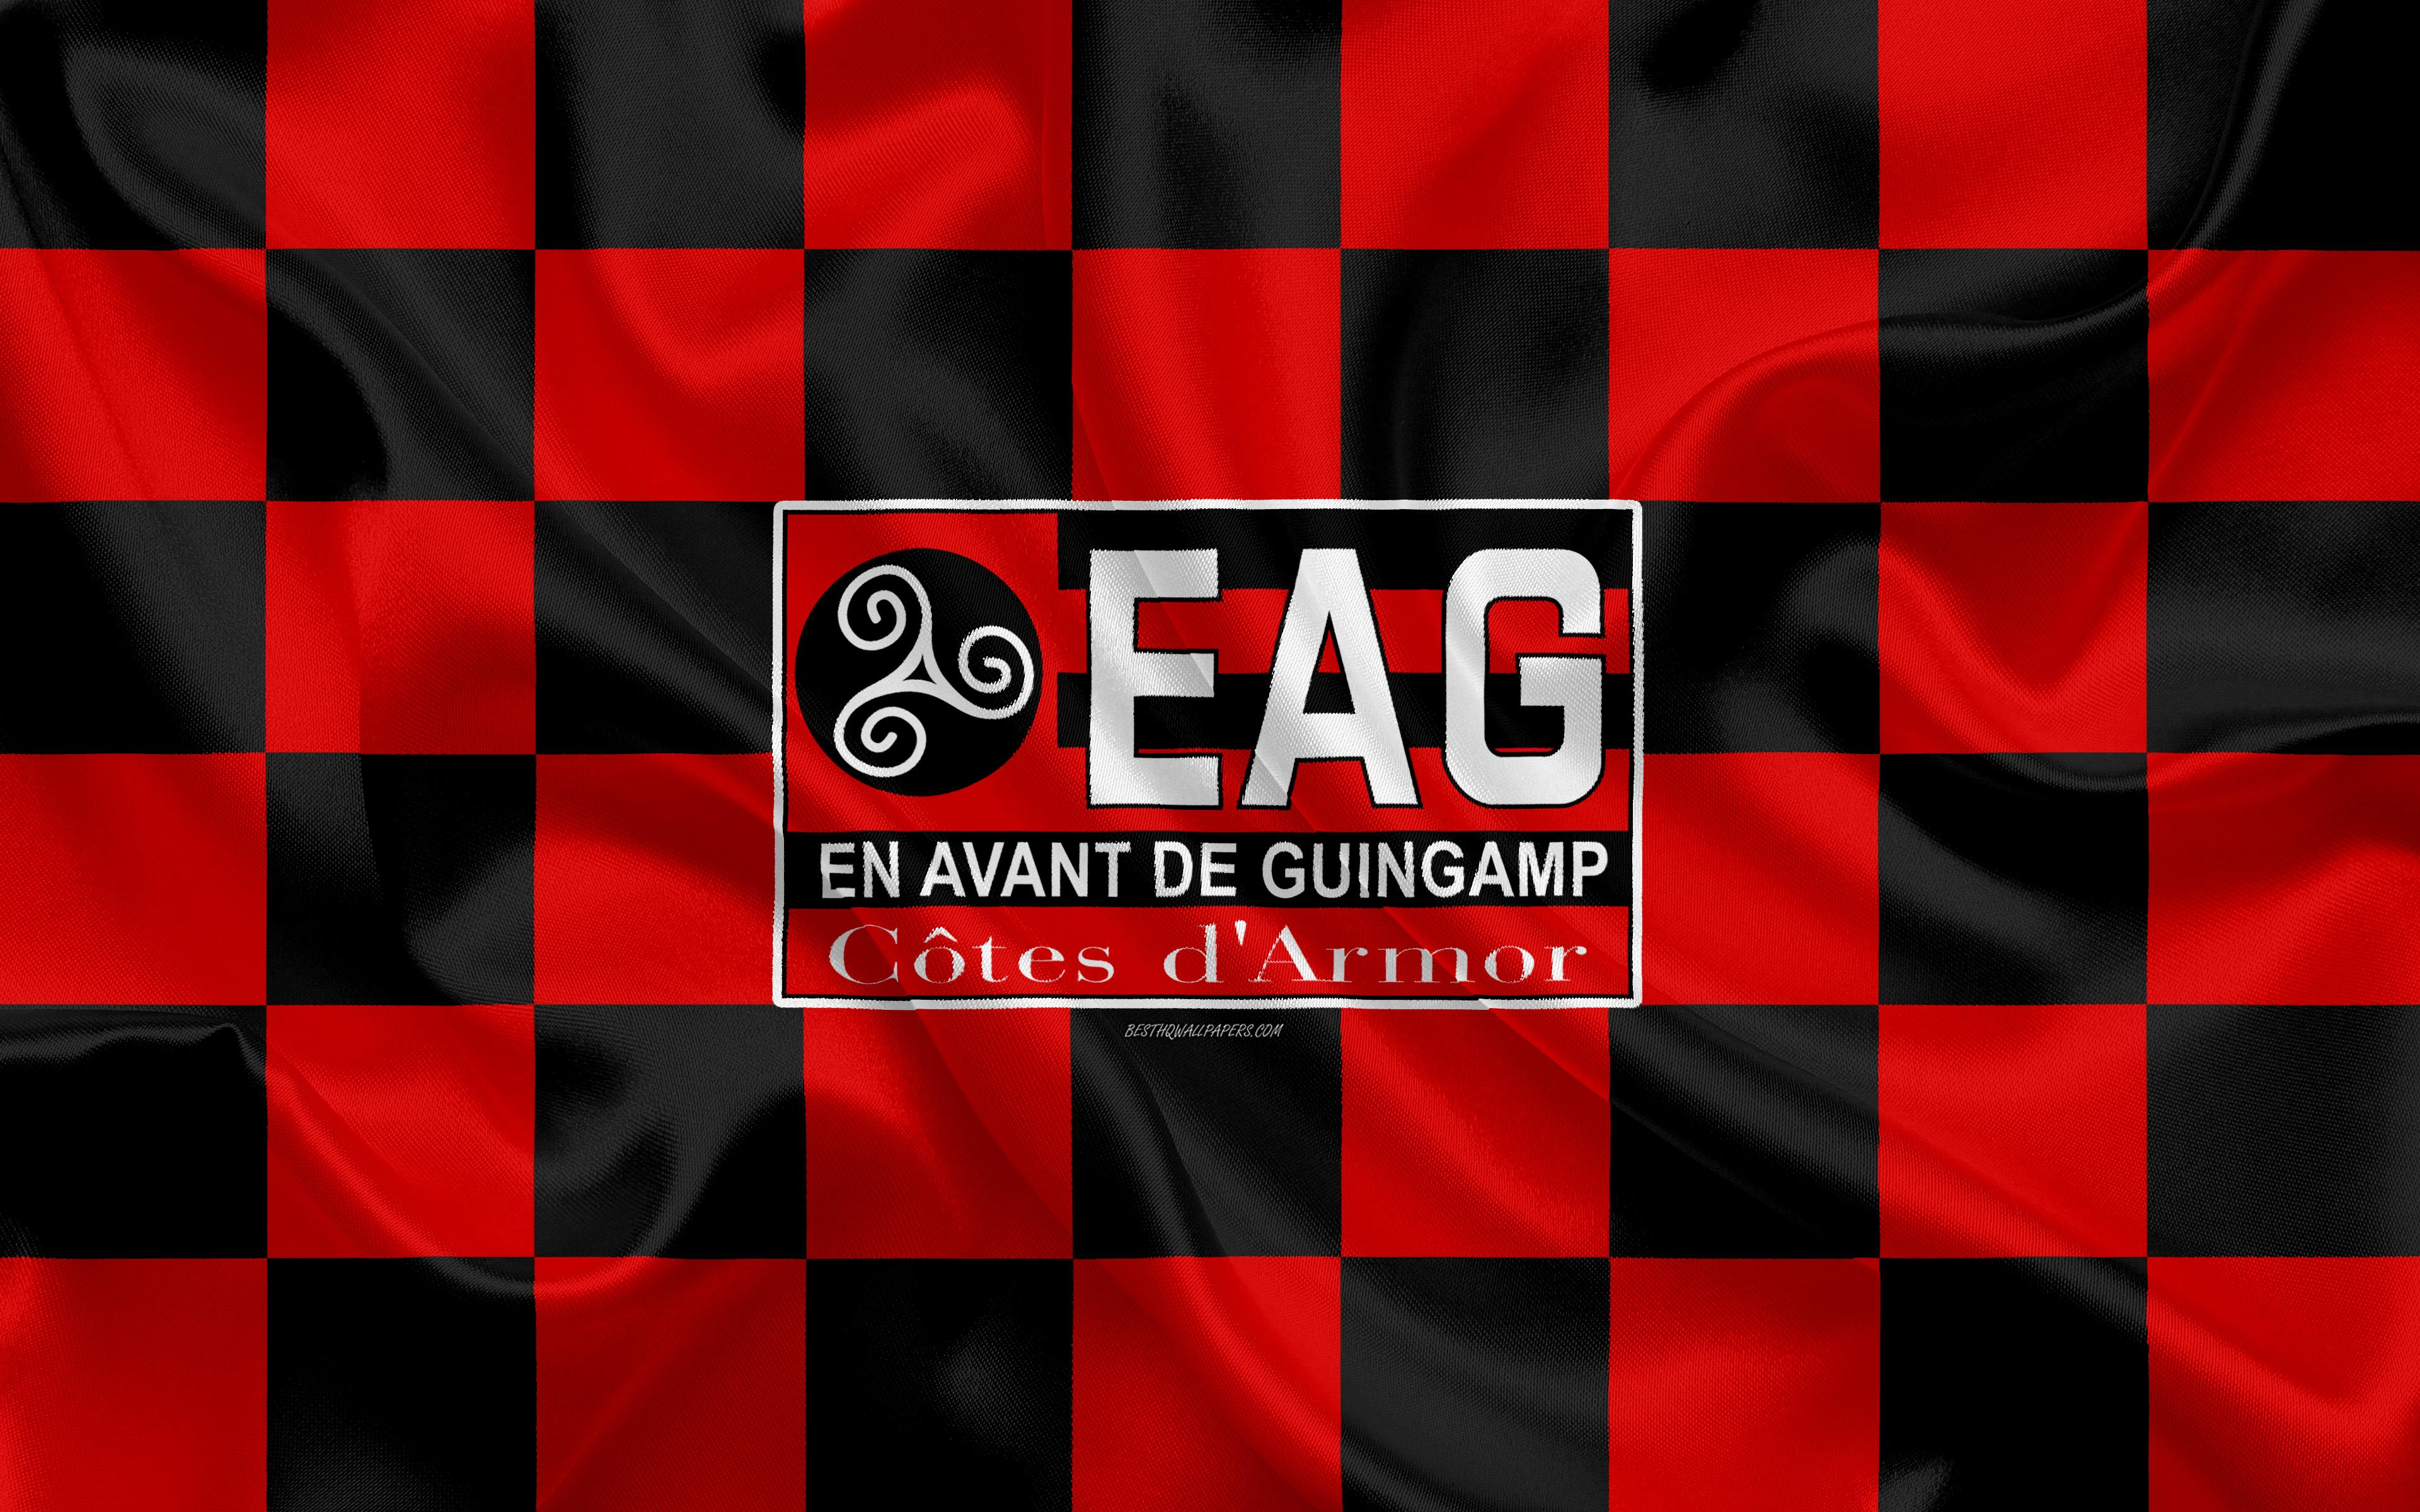 Download wallpapers En Avant de Guingamp, 4k, logo, creative art